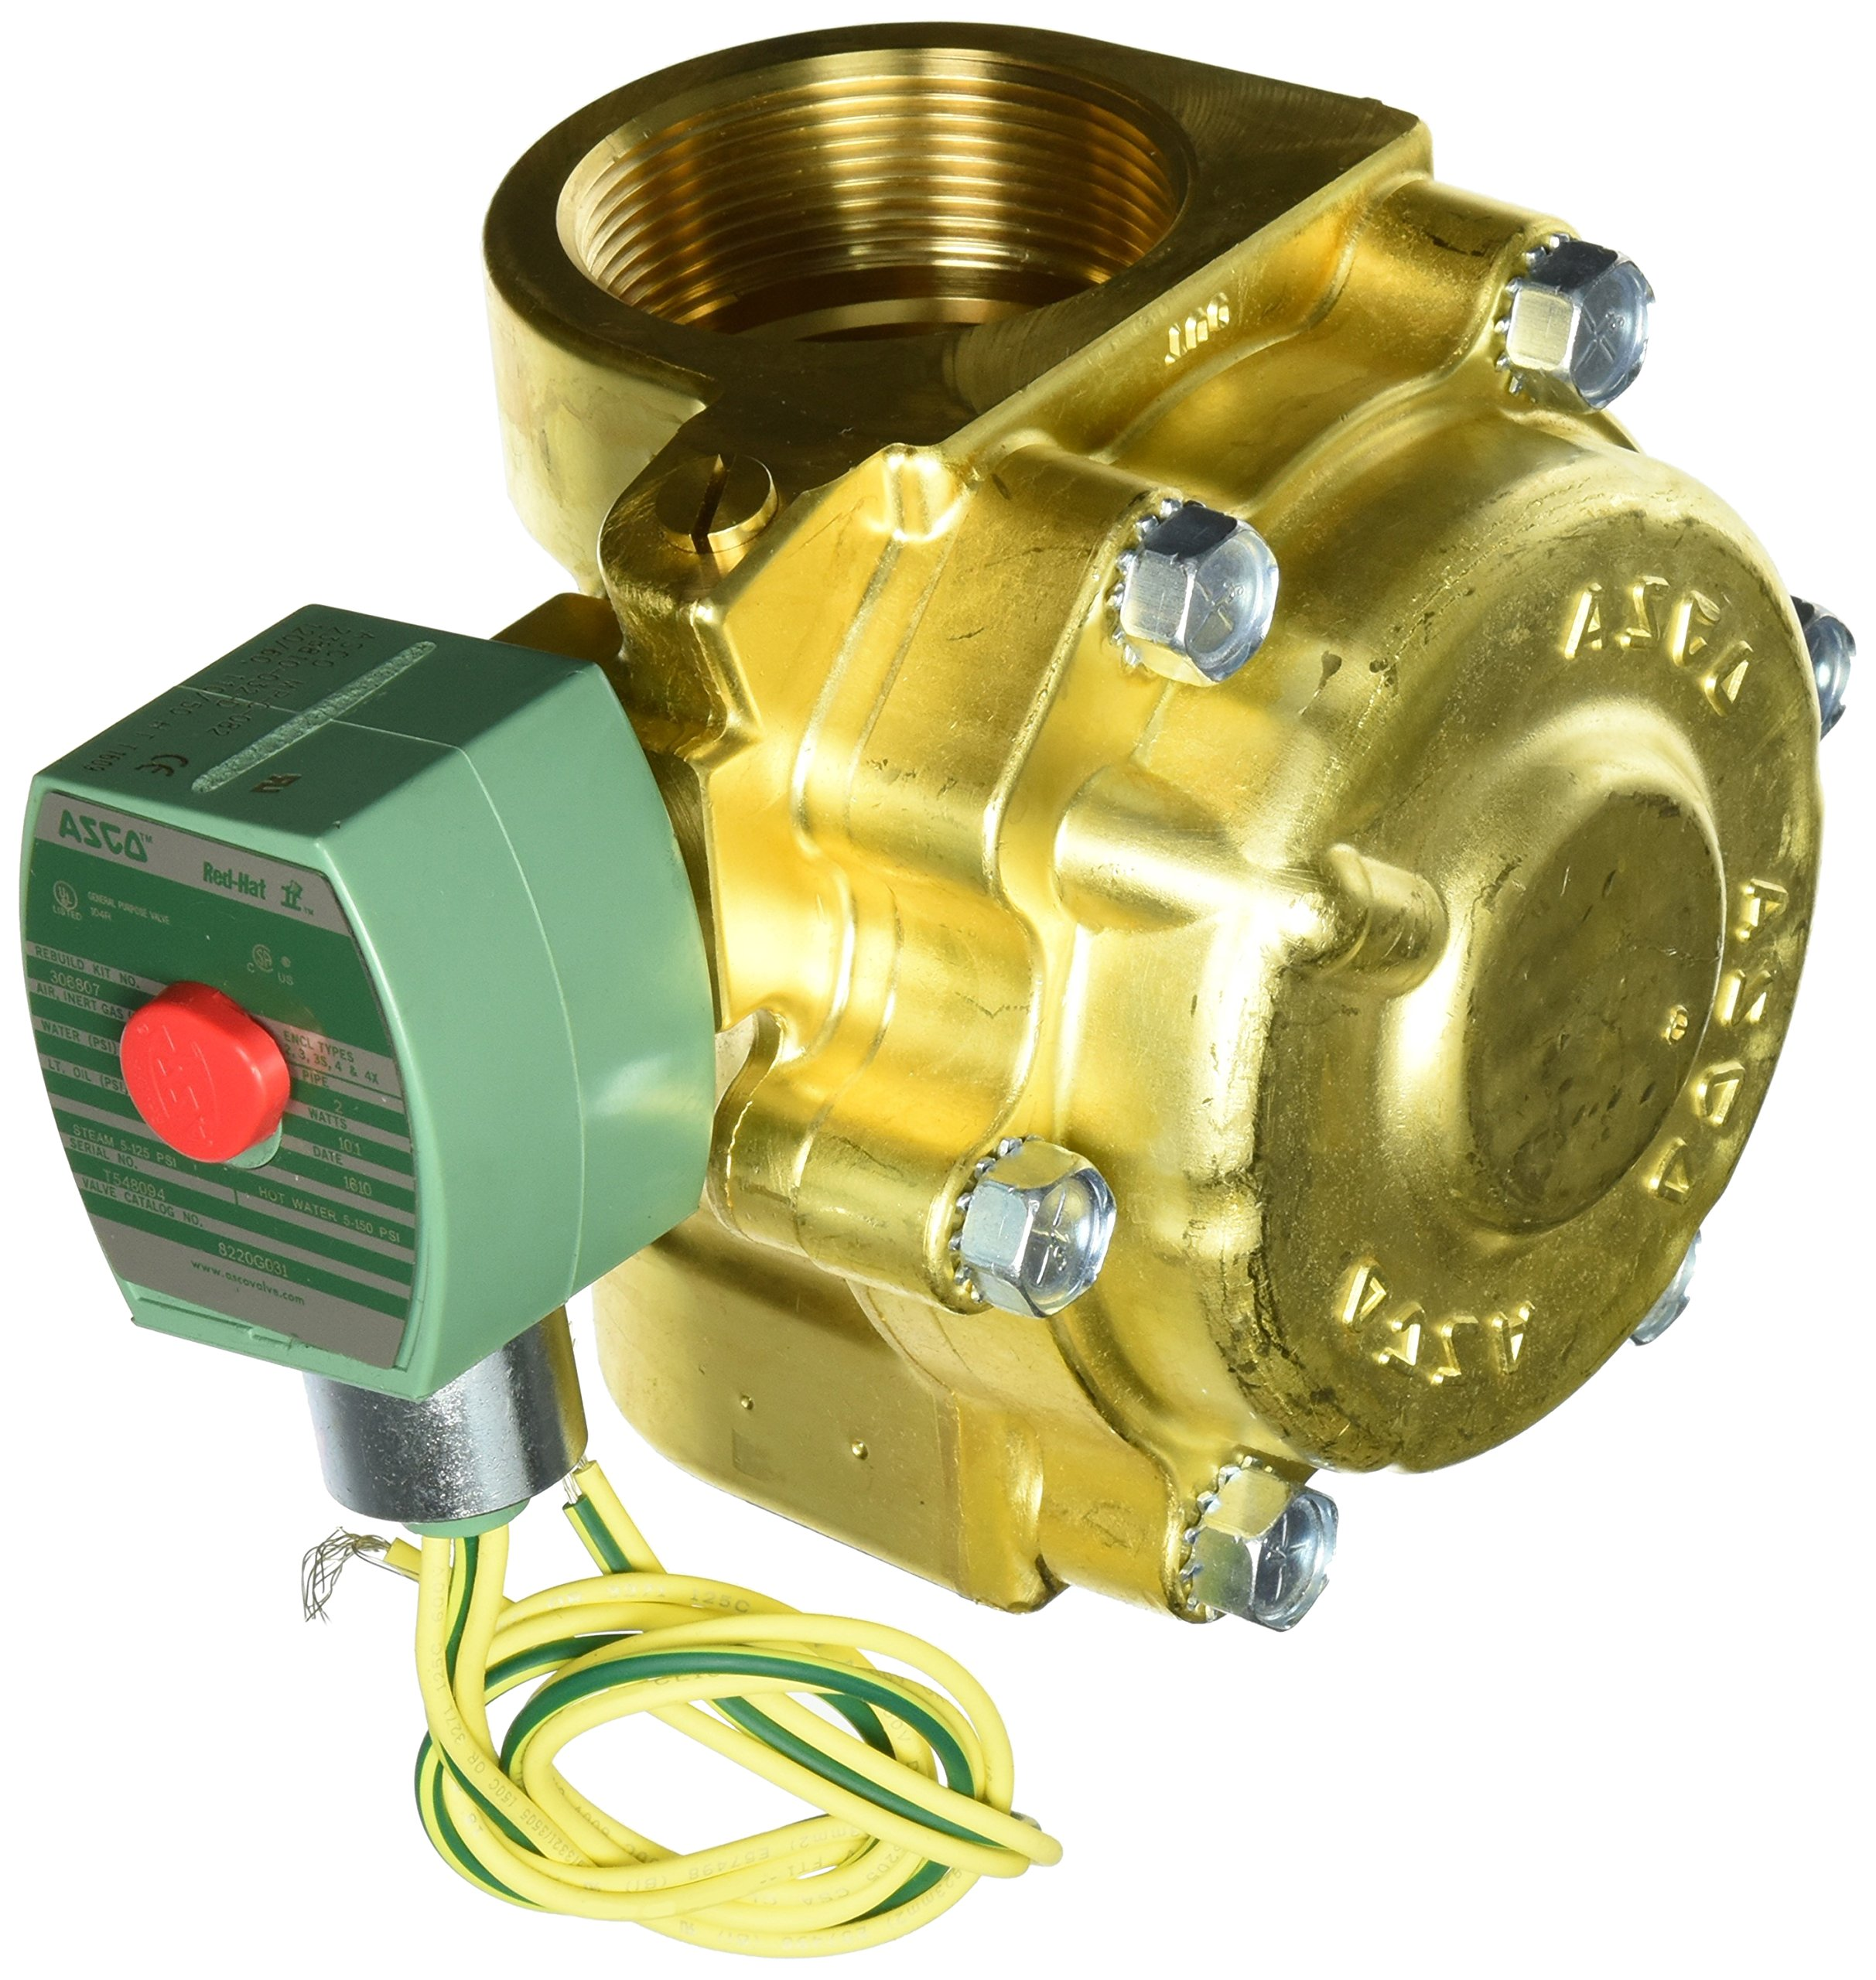 ASCO 8220G031 -120/60,110/50 Brass Body Hot Water and Steam Pilot Operated Diaphragm and Piston Valve, 2'' Pipe Size, 2-Way Normally Closed, PTFE Sealing, 1-3/4'' Orifice, 43 Cv Flow 120V/60 Hz, 110V/50 by Asco (Image #1)